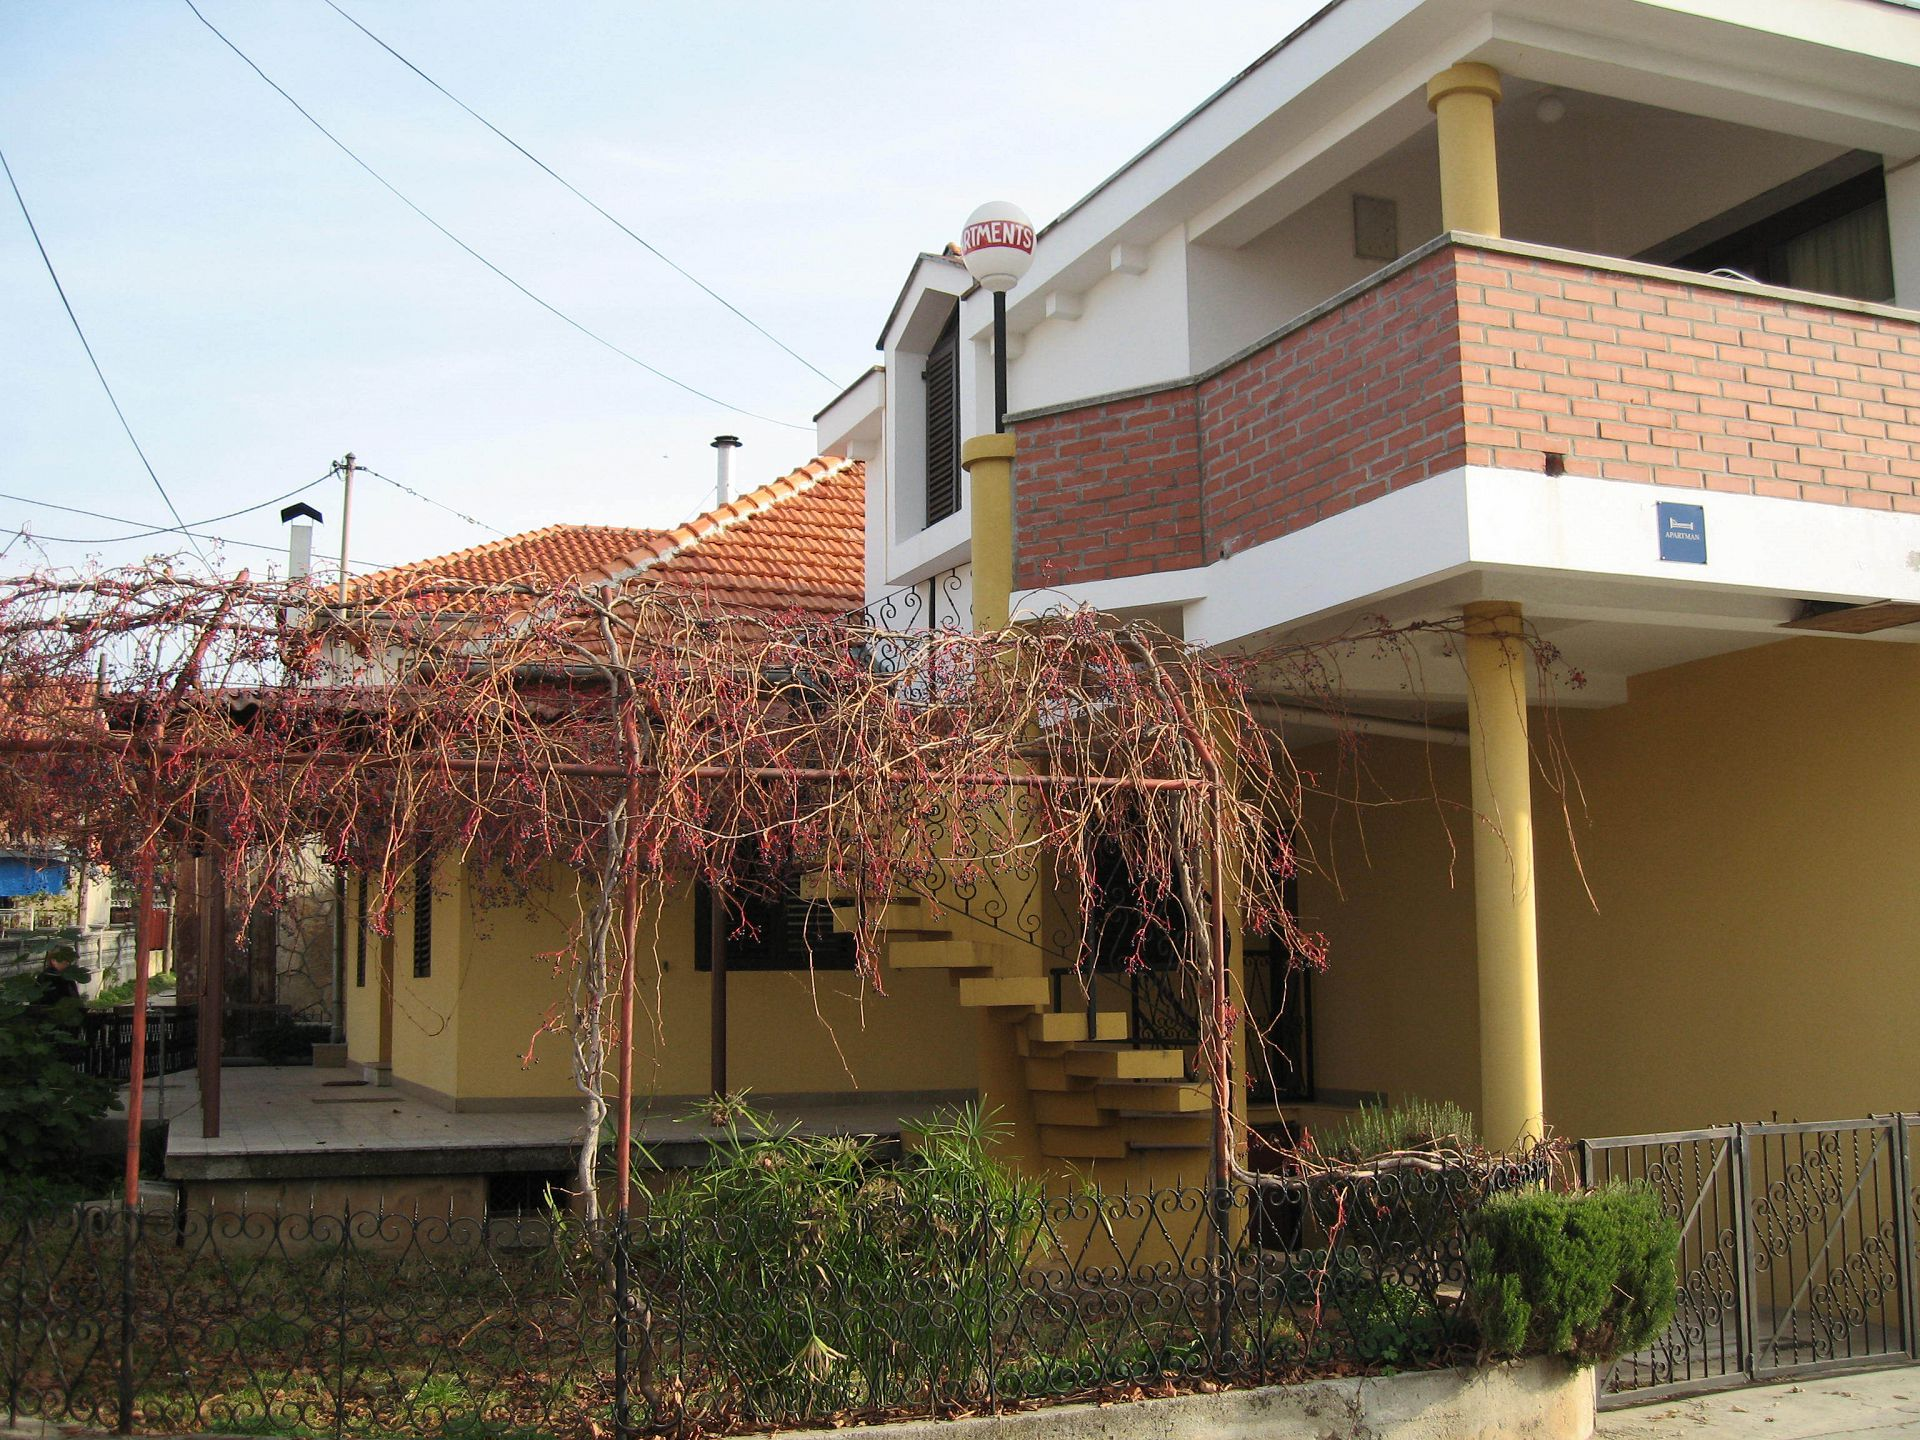 00318BIBI - Bibinje - Holiday houses, villas Croatia